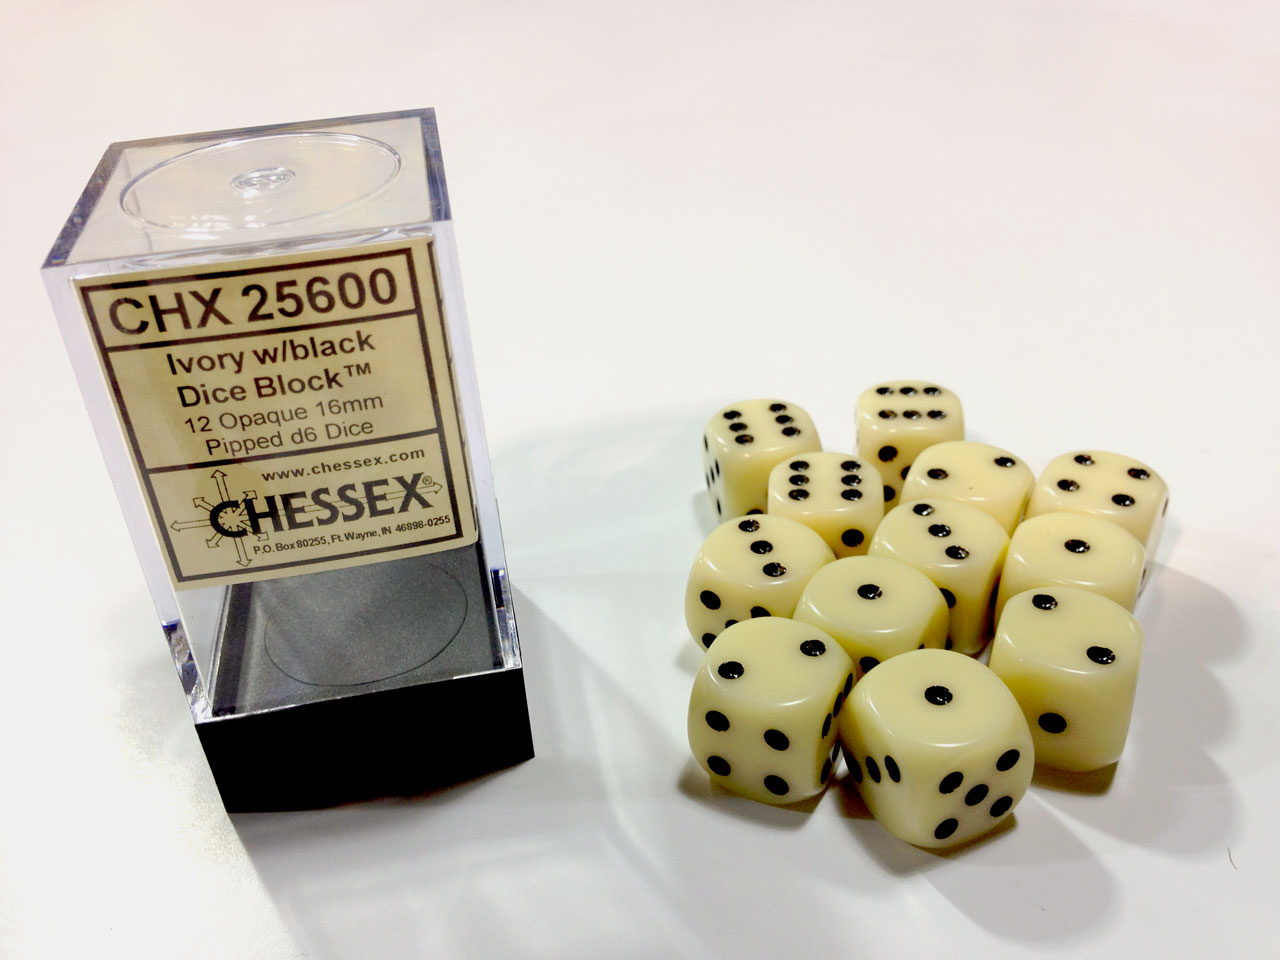 Dice 12D6 Set - Opaque Ivory w/Black